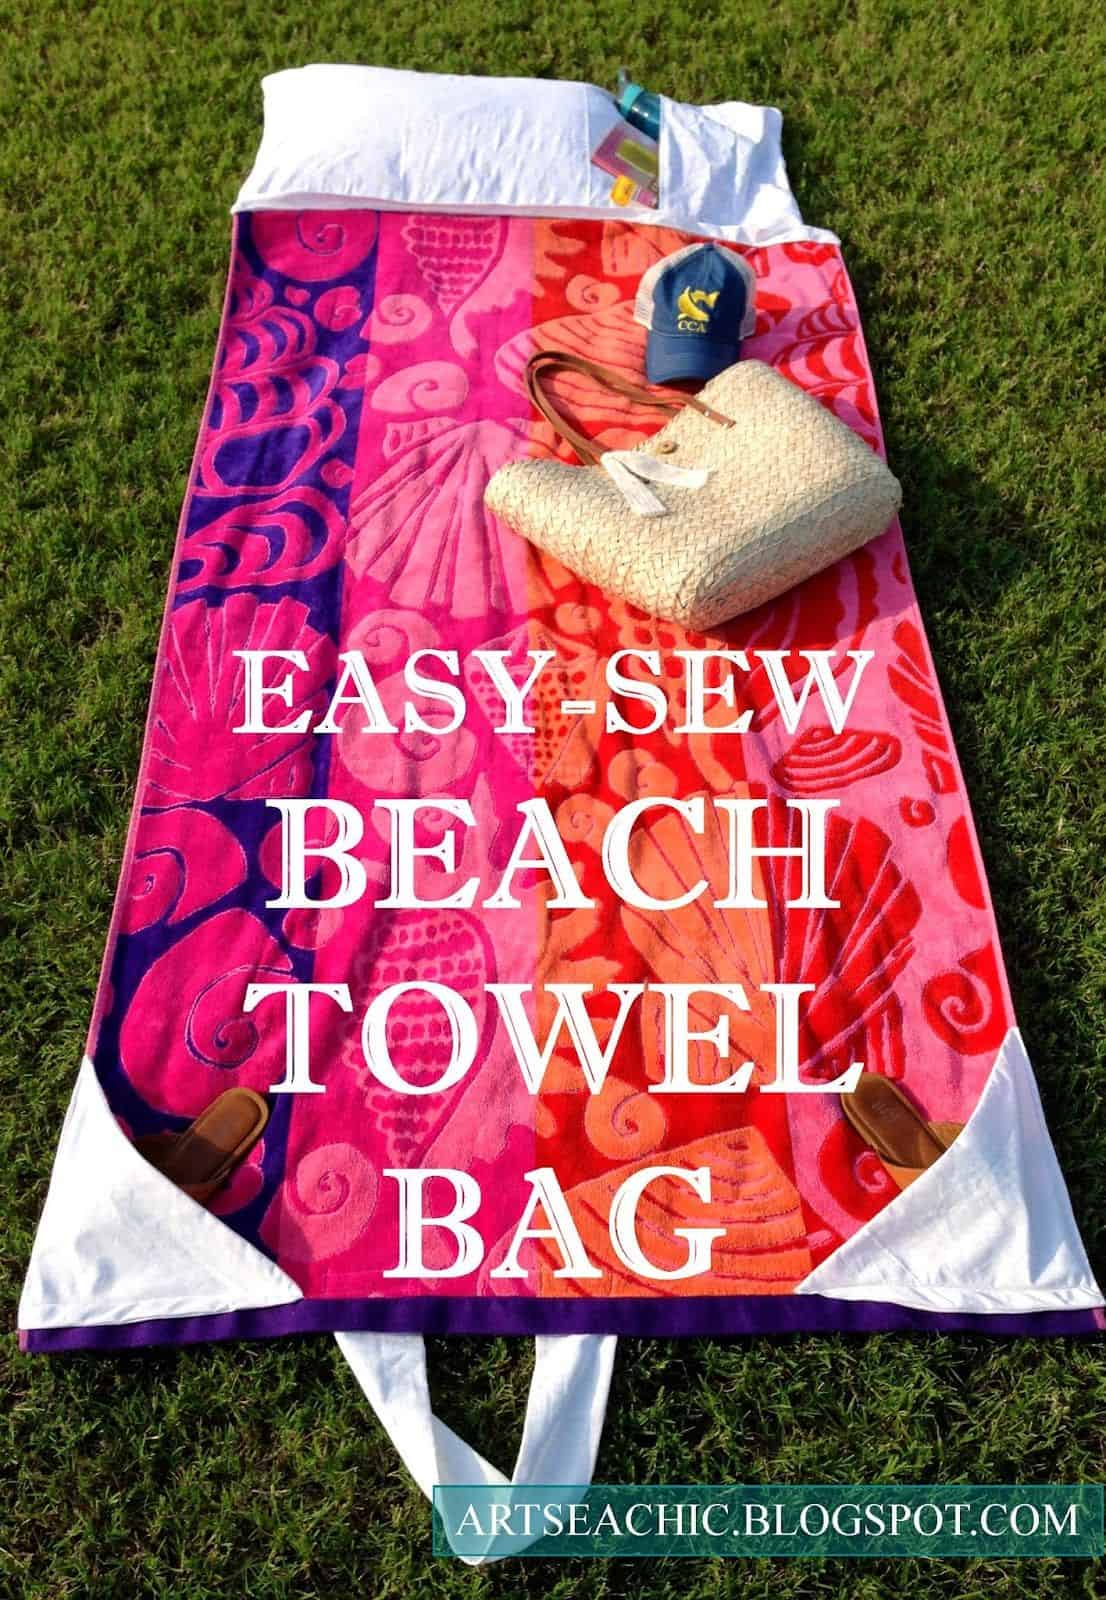 Easy sew beach towel lounger bag